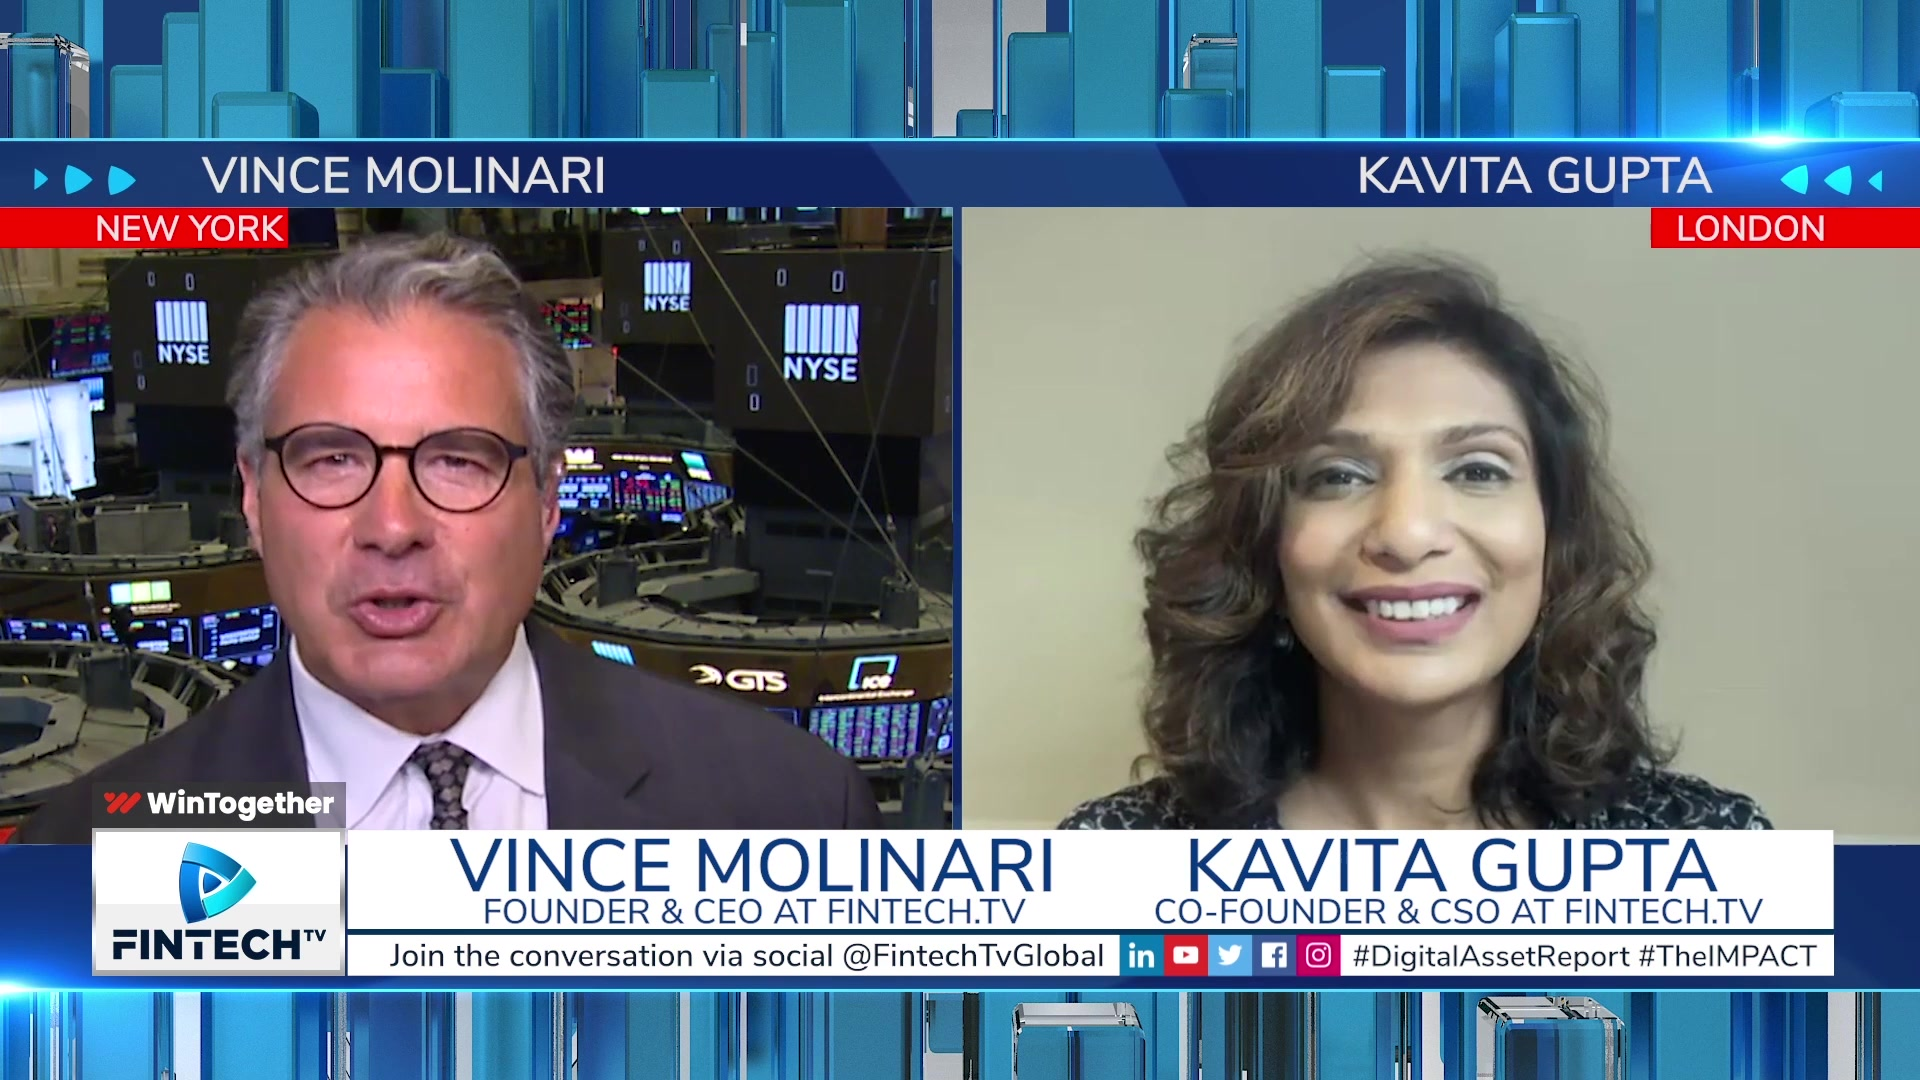 CNBC Africa - The Rise of Digital Financial Services in Africa with Shivani Siroya & Apollo Eric